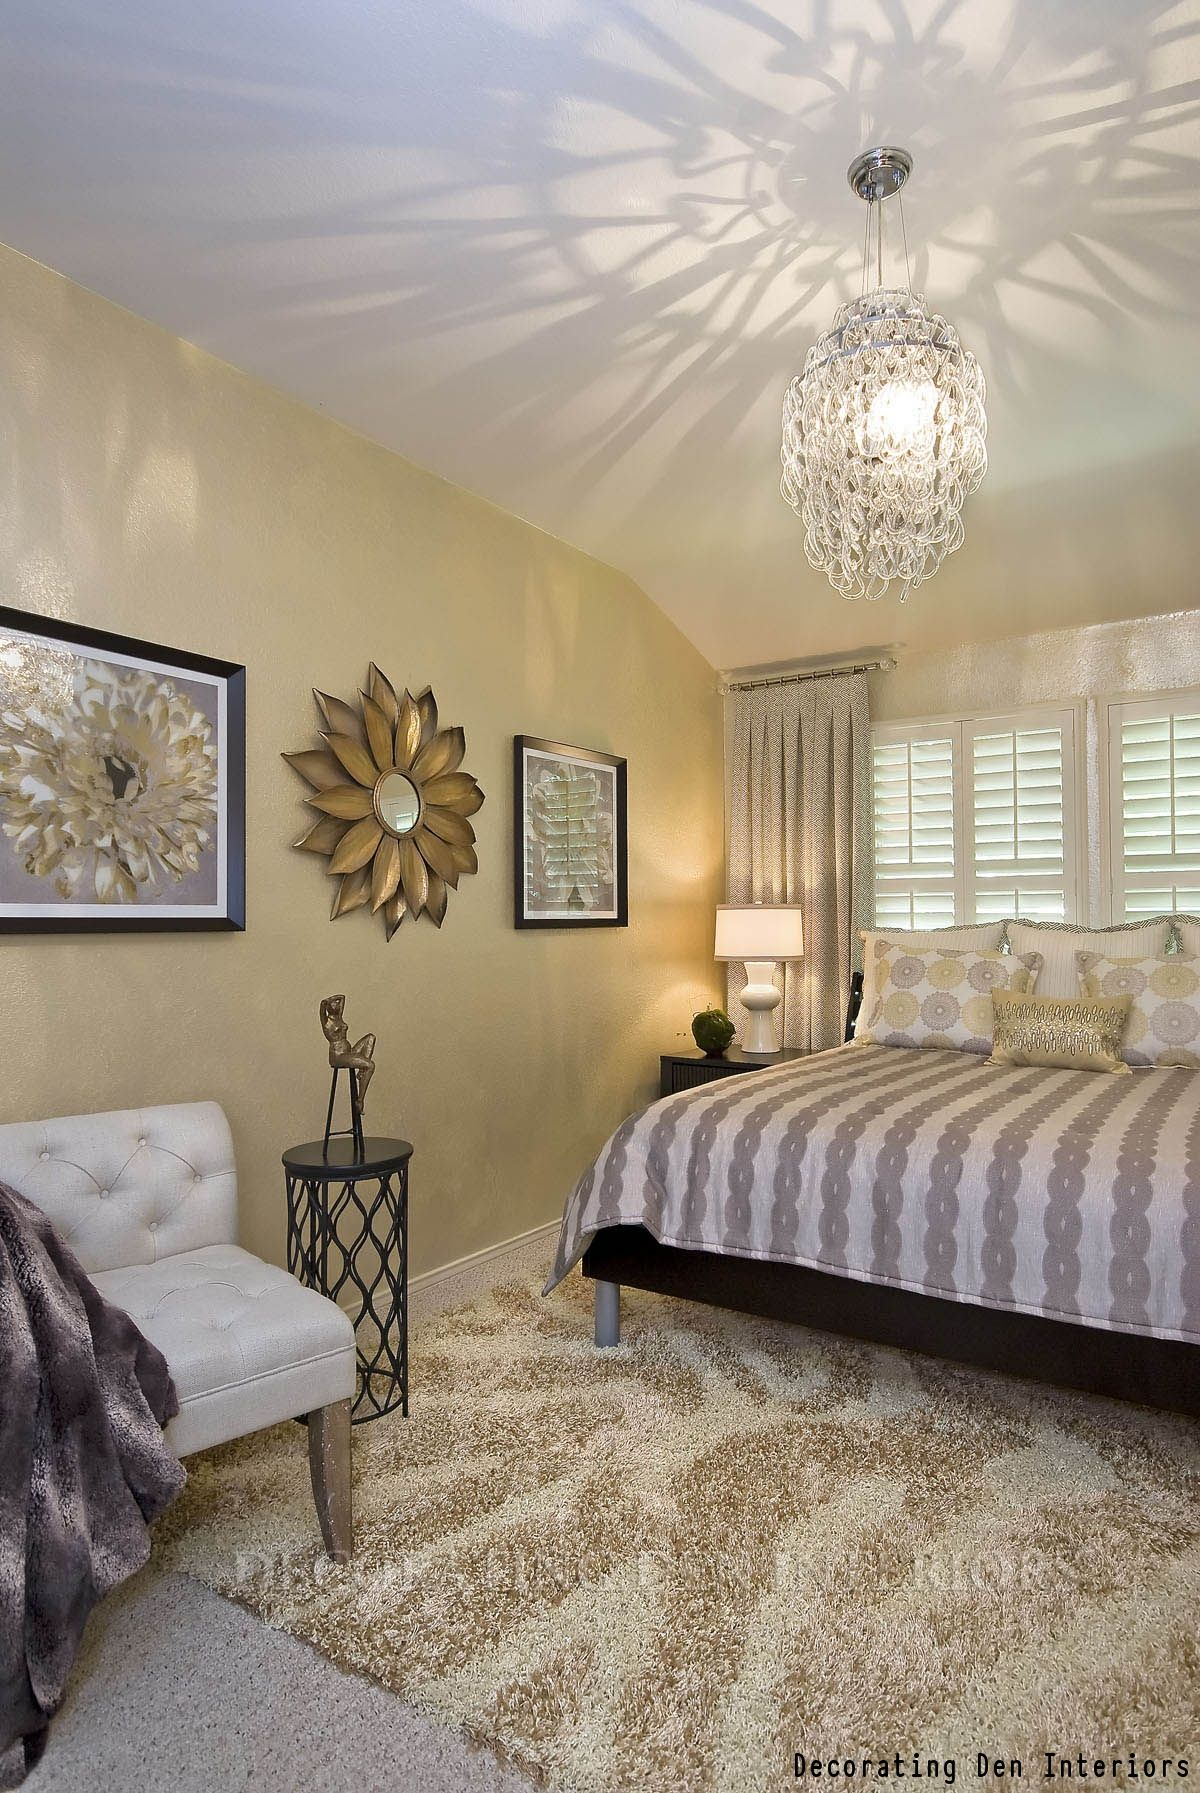 Window bedroom design  are windows required in basement bedroom  basement bedrooms